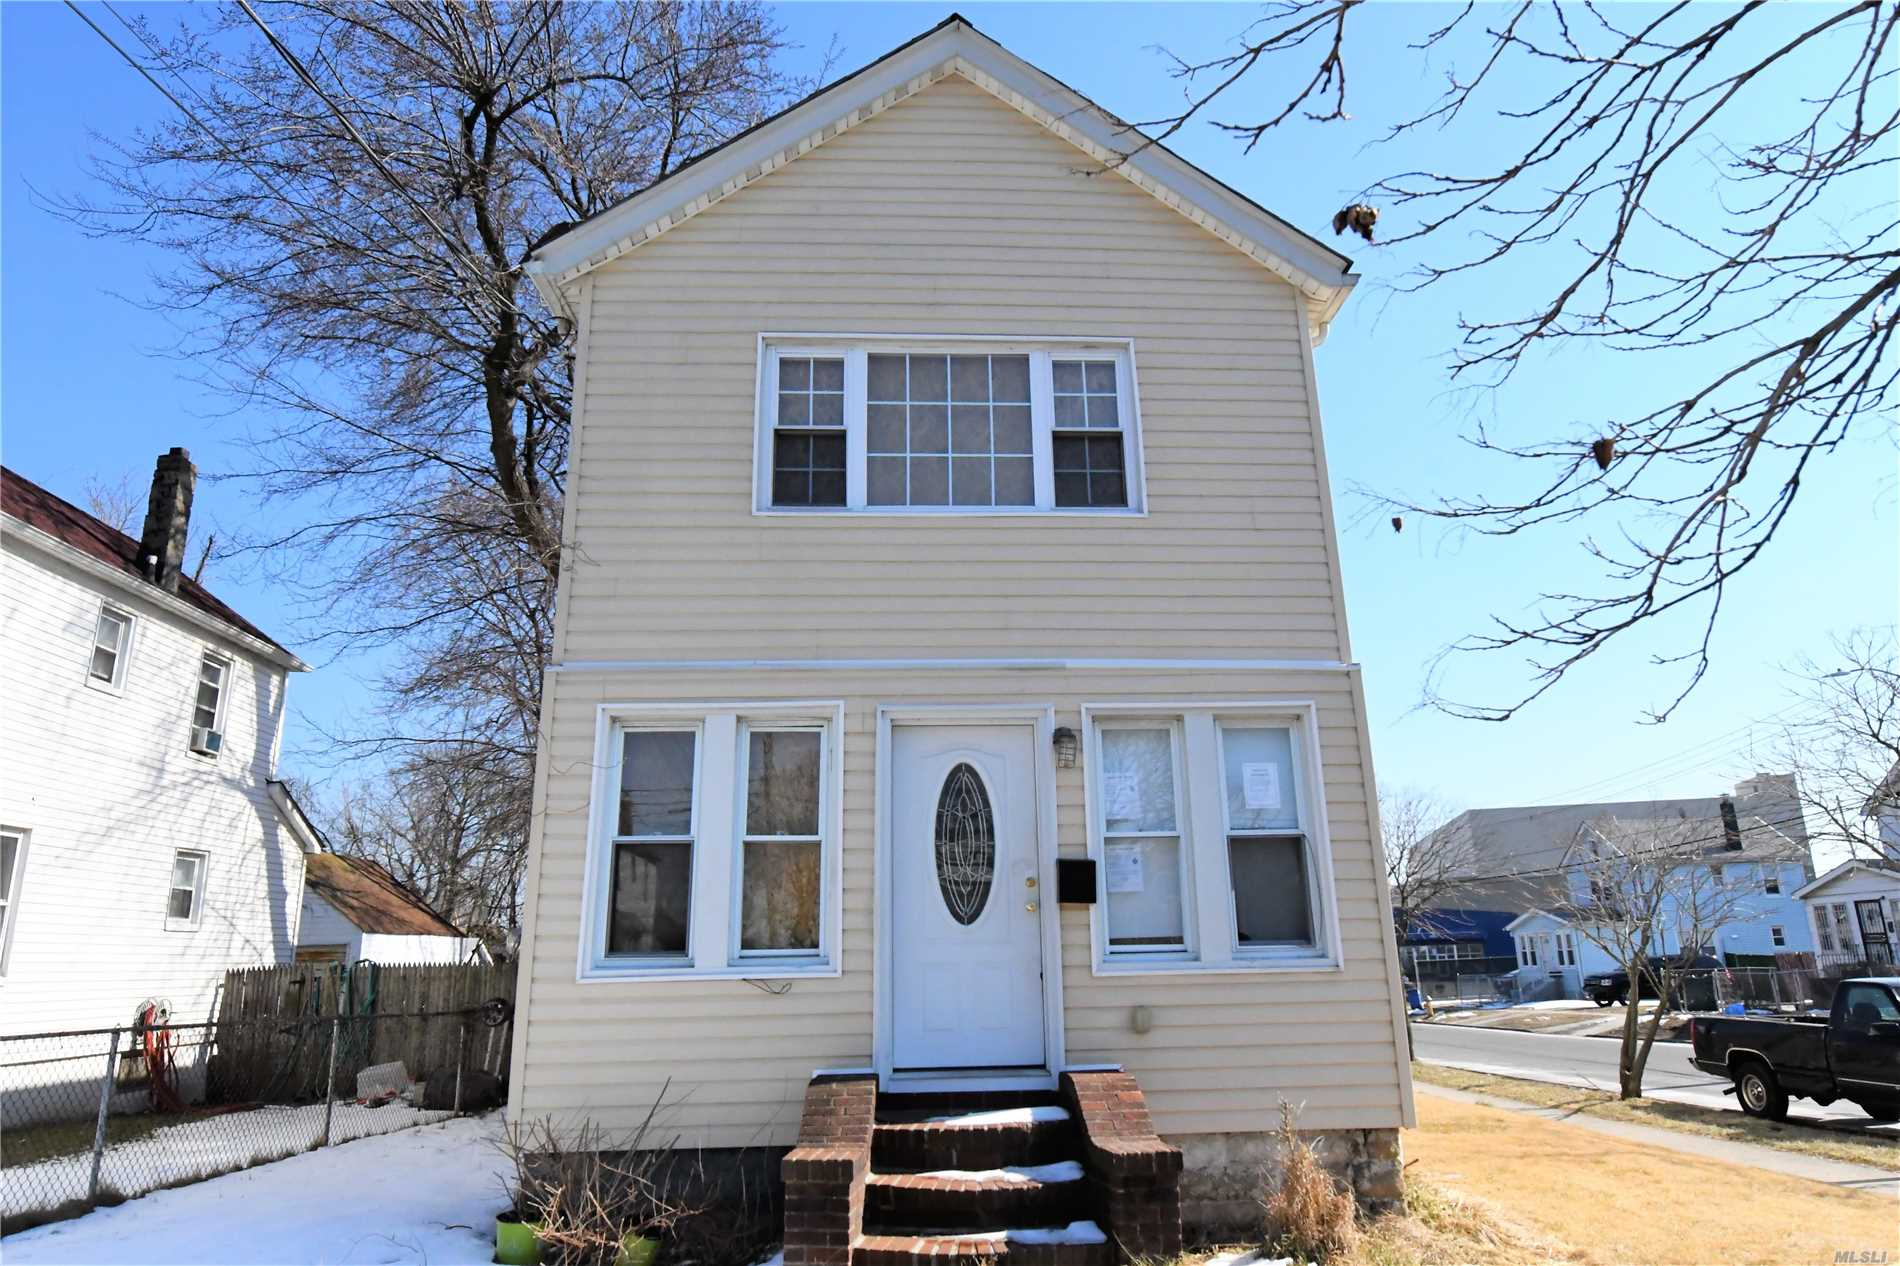 Springfield Gardens: This 1 Family Detached Colonial Features A Full Finished Basement, Living/Dining Room, Kitchen, 4 Bedrooms And 2.5 Bathrooms. This Property Also Has A Private Driveway With A Detached Garage. Bring Your Contractors , Architects, Engineers And Hard Hats For This One. It's Conveniently Located Near Restaurants, Shopping Centers, Parks, And Schools Etc. Don't Miss This Opportunity!